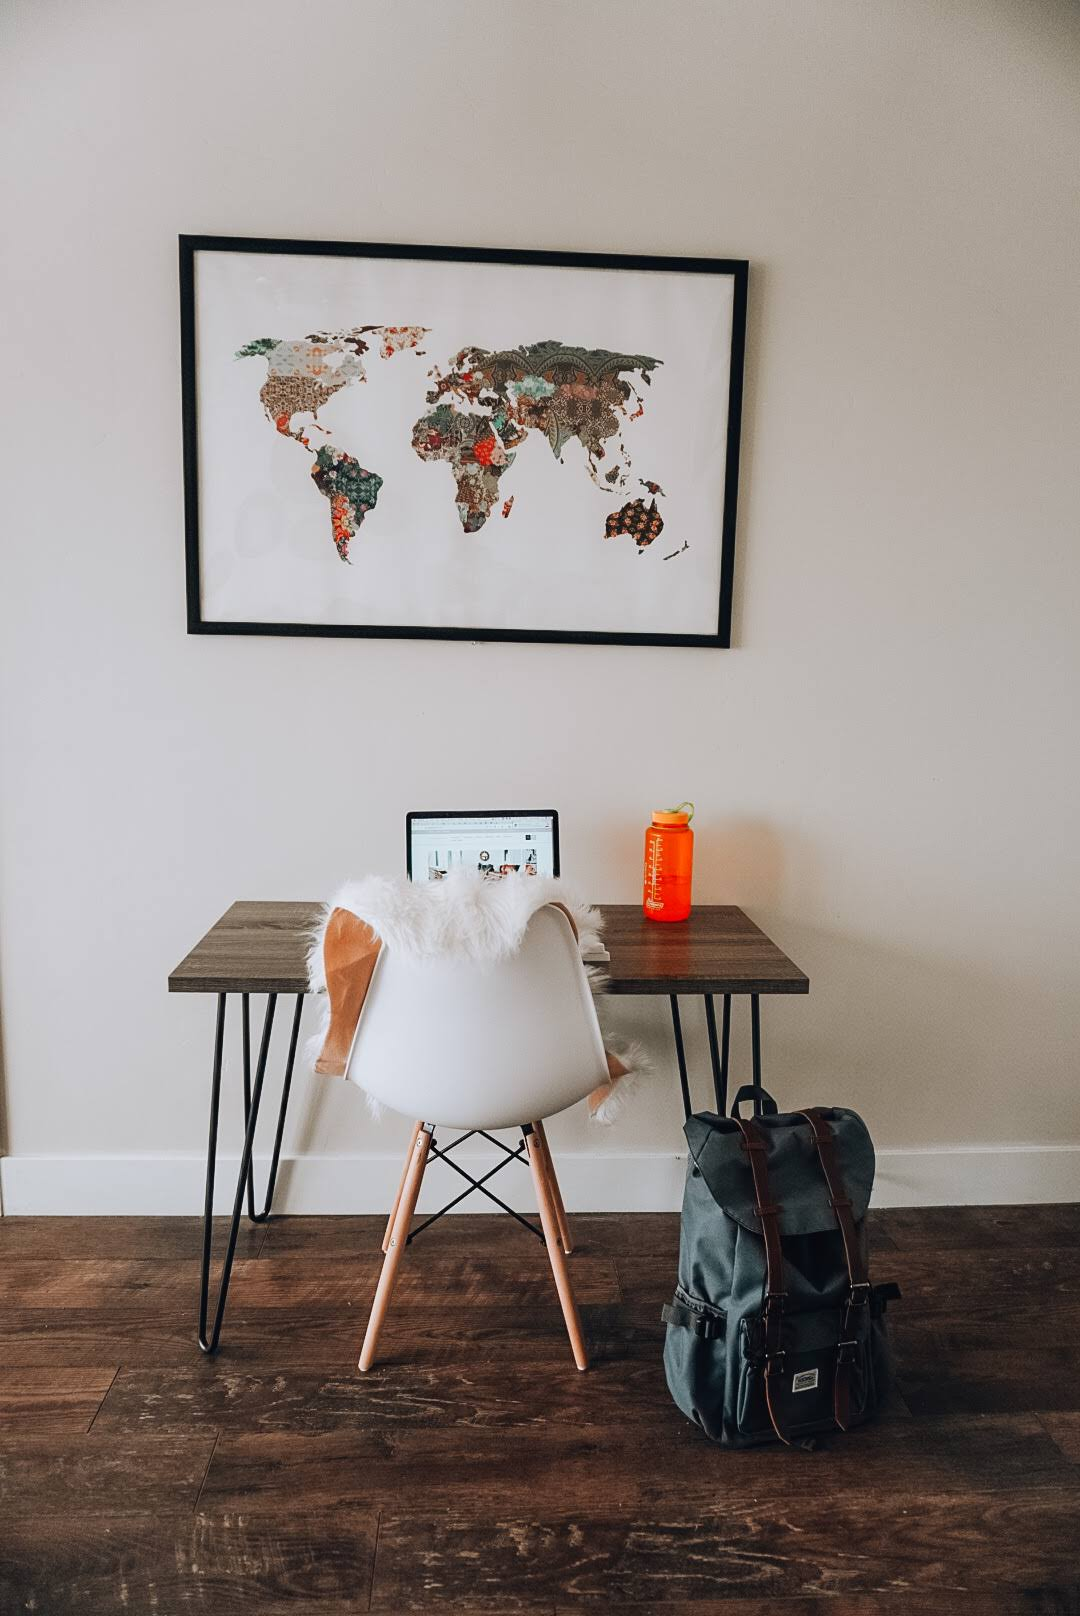 In this edition of our month-long work from home series, Kylie Chenn founder of Acanela Expeditions shares her daily work ritual.